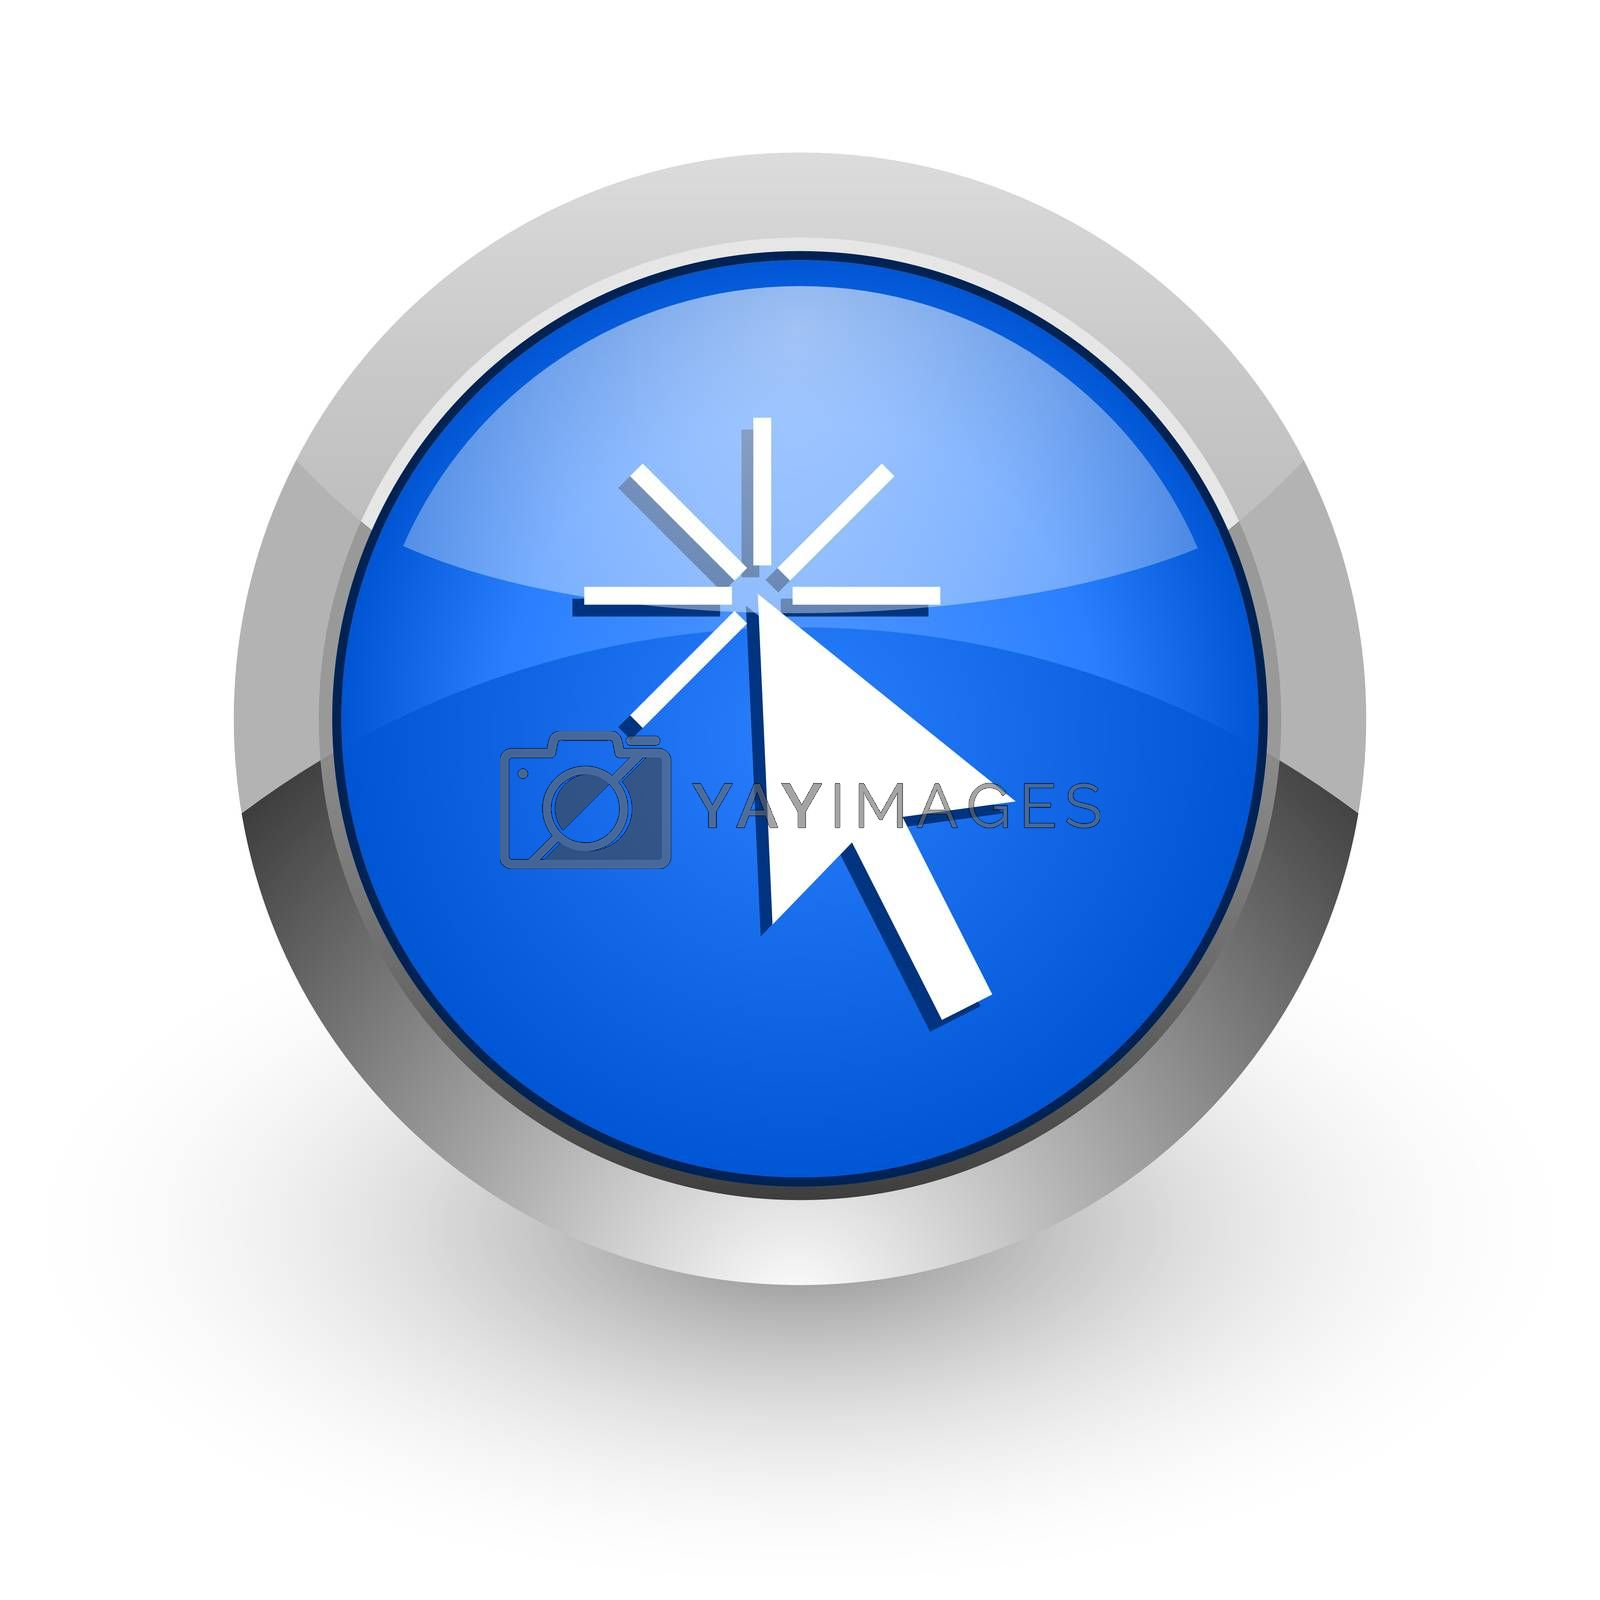 Royalty free image of click here blue glossy web icon by alexwhite